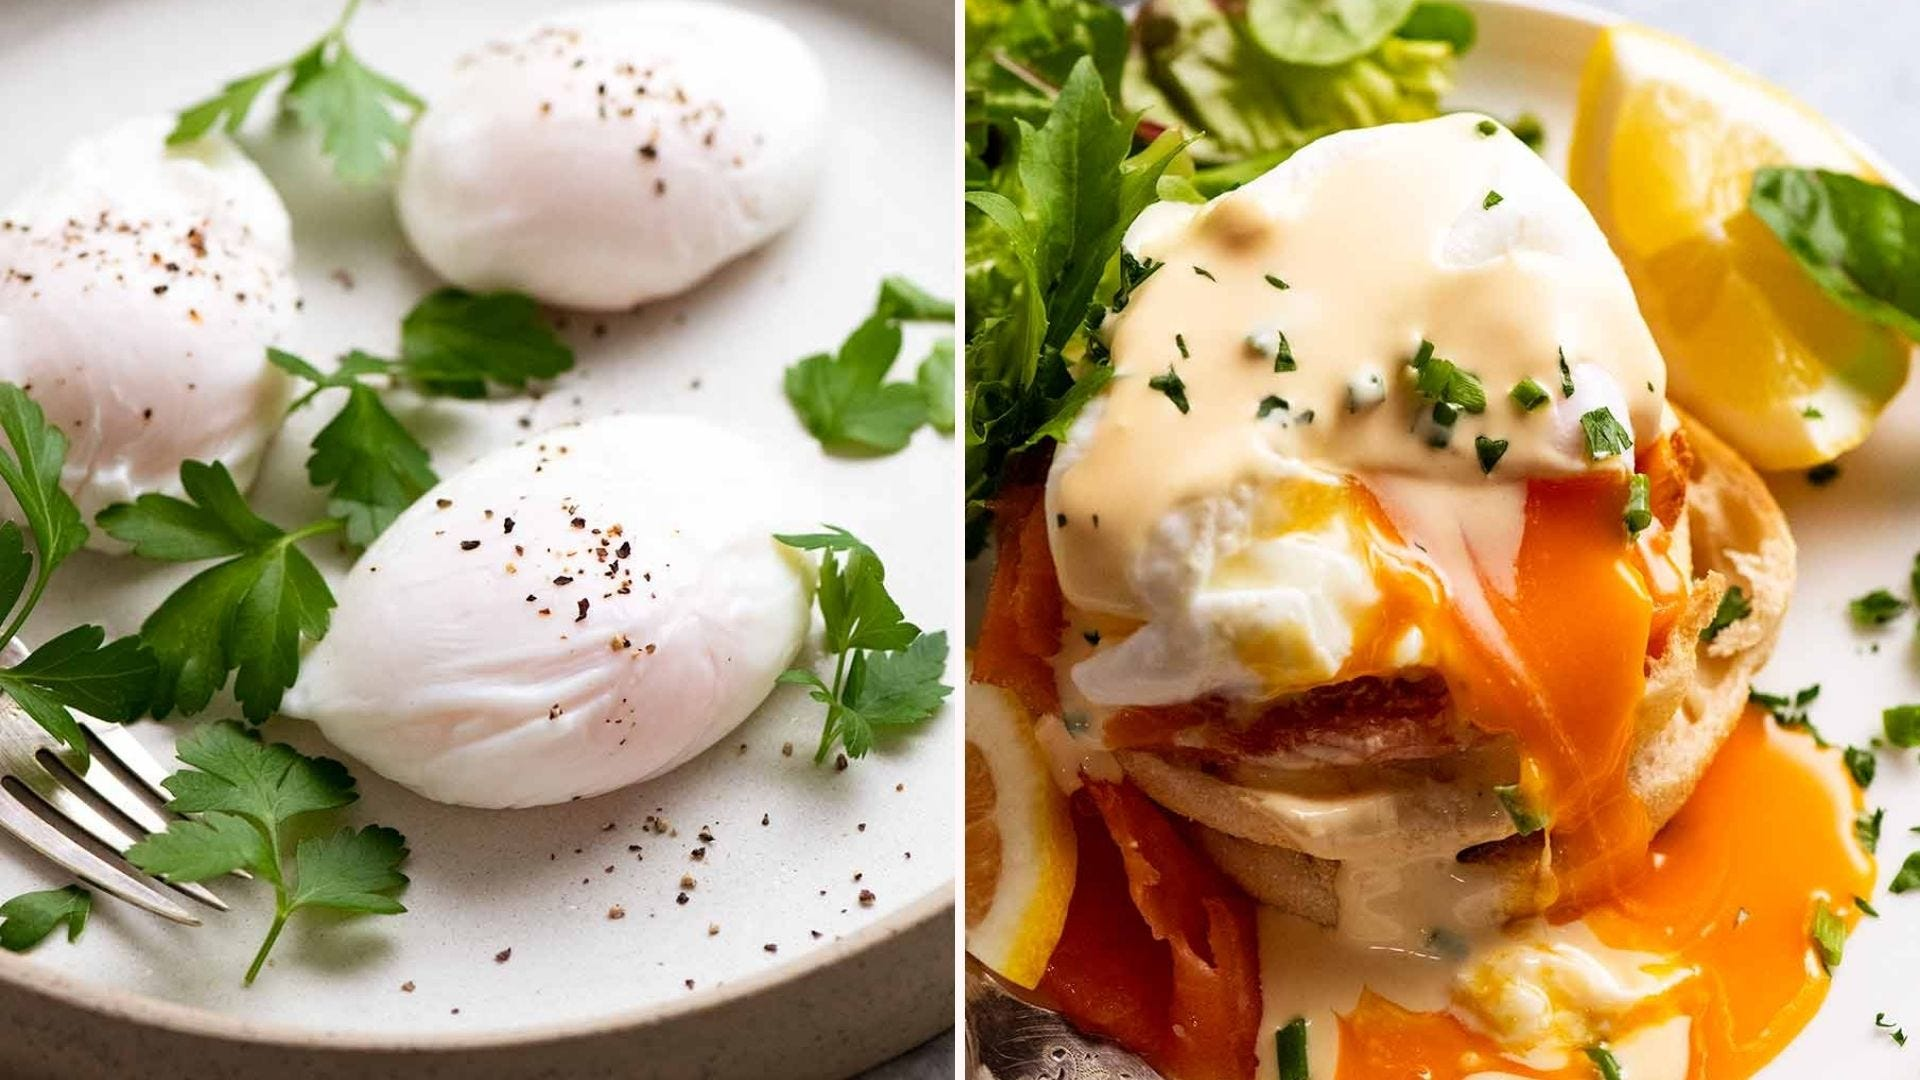 Three poached eggs on a plate and the finished classic eggs Benedict on a plate.